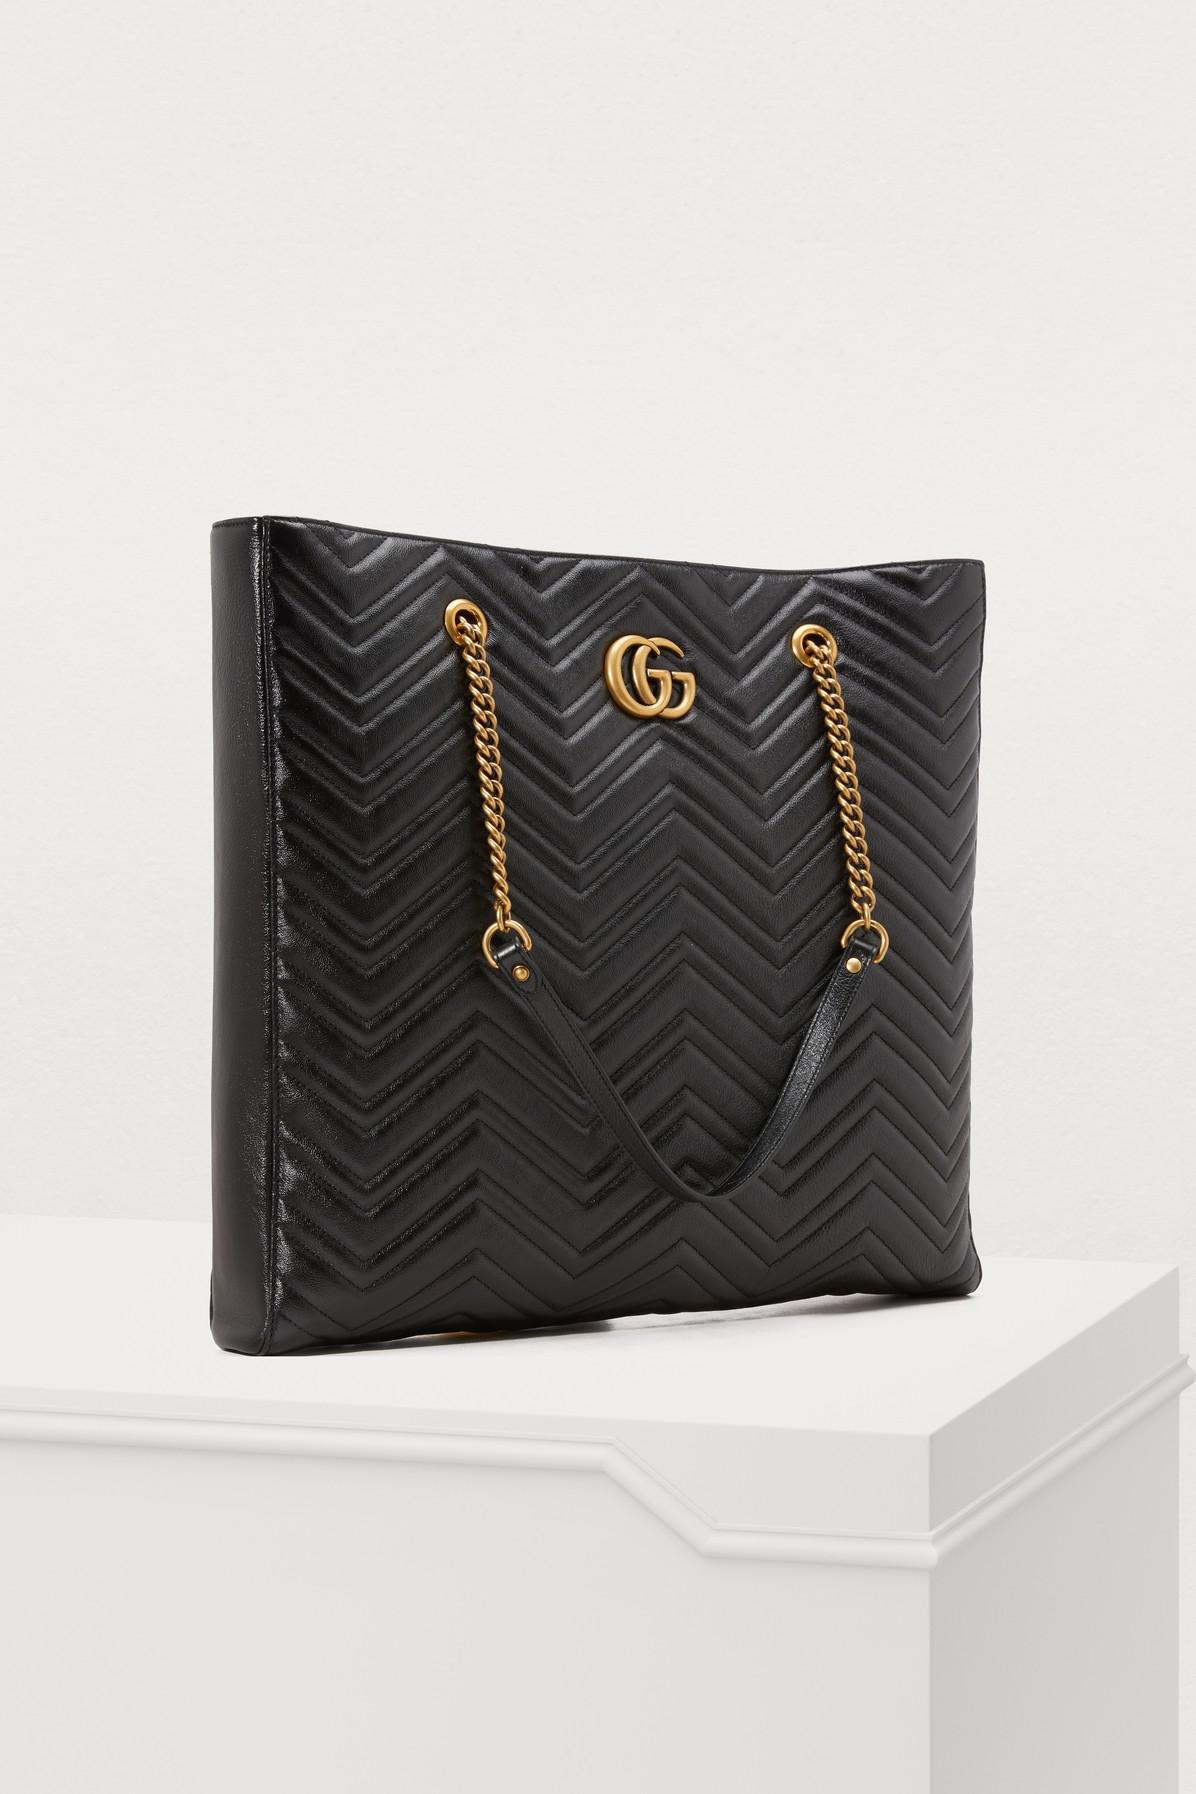 adcf2c3494d Gucci GG Marmont Gm Tote in Black - Lyst